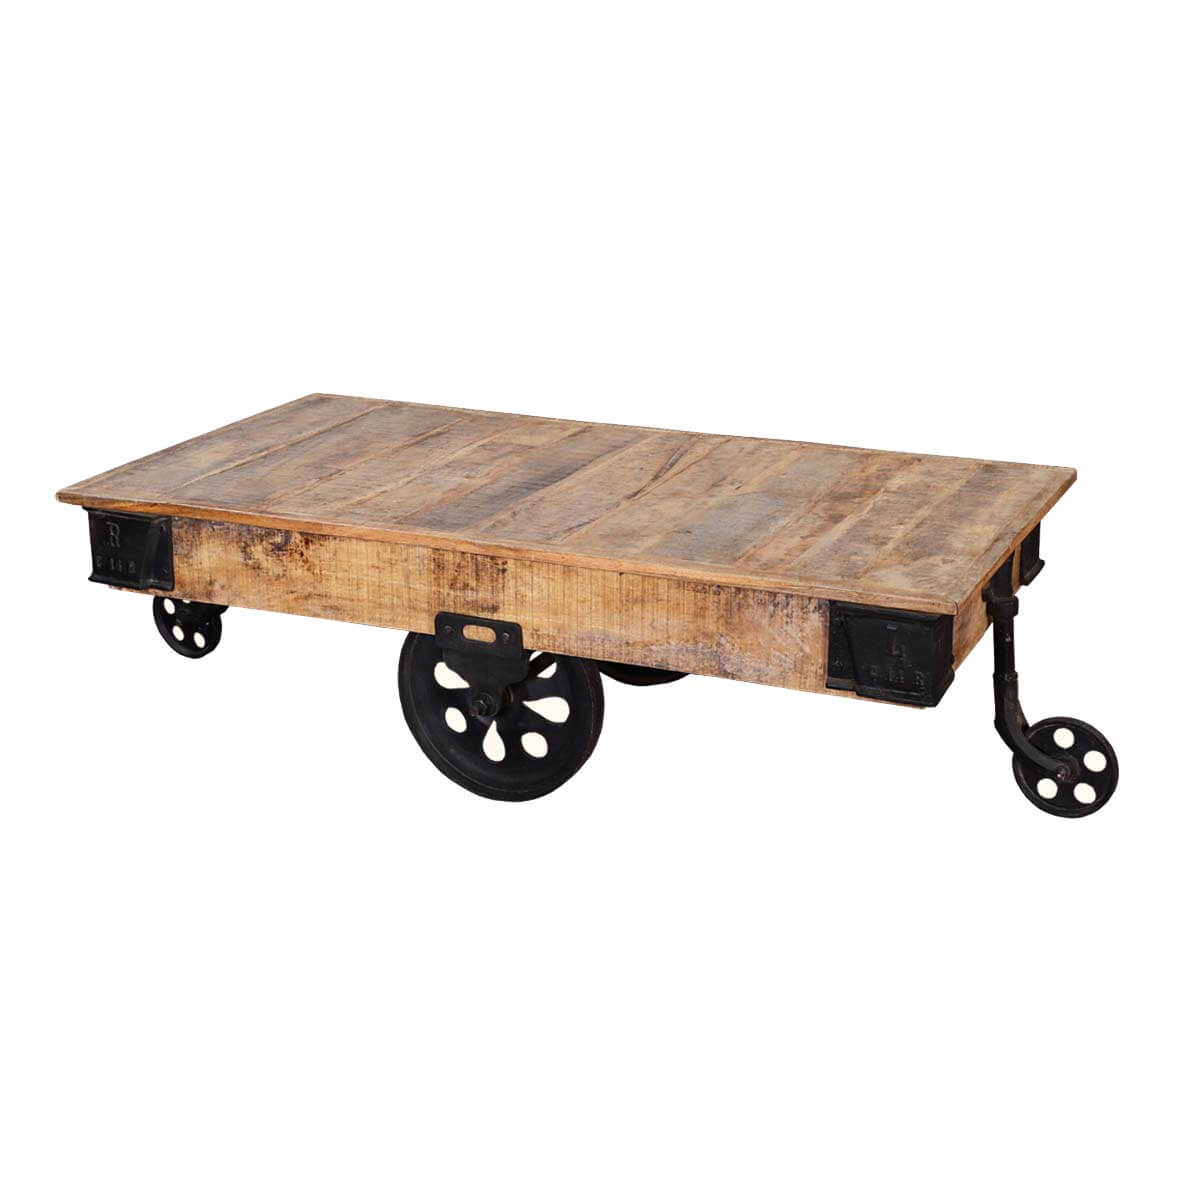 Rustic Wood Pallet Coffee Table: Industrial Rustic Mango Wood & Iron Rolling Coffee Table